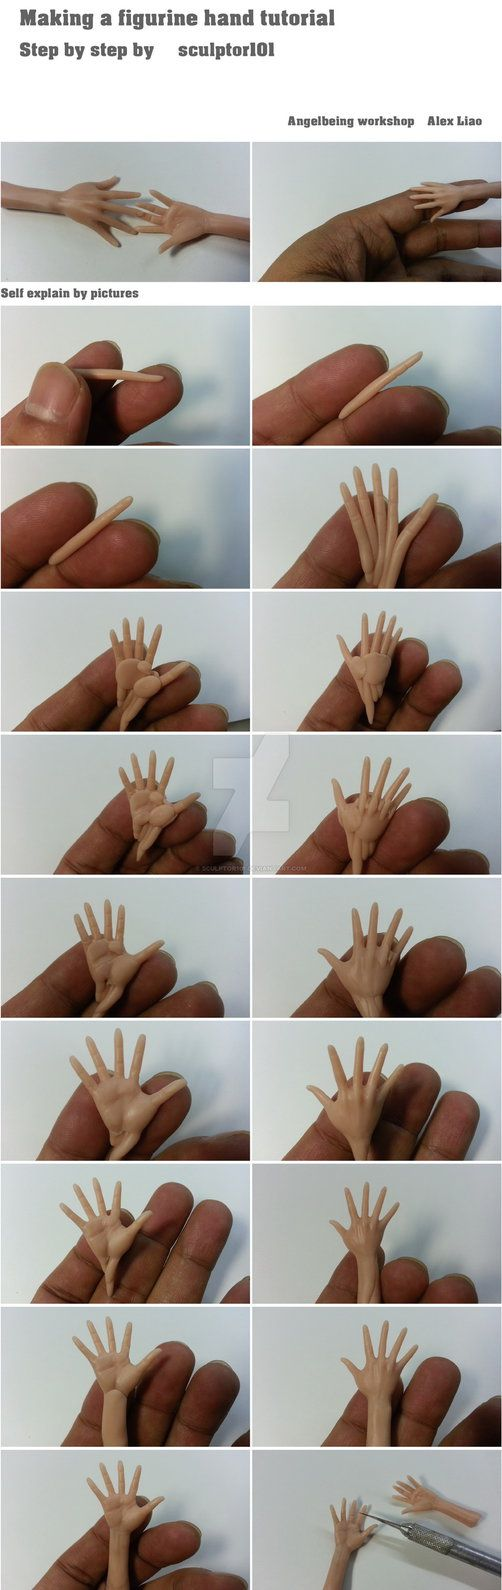 It took me a while to make this simple tutorial of how to make figurine hand. Wish I have an extra hand to take pictures... It is pretty much self explain of step by step in the picture comparison....